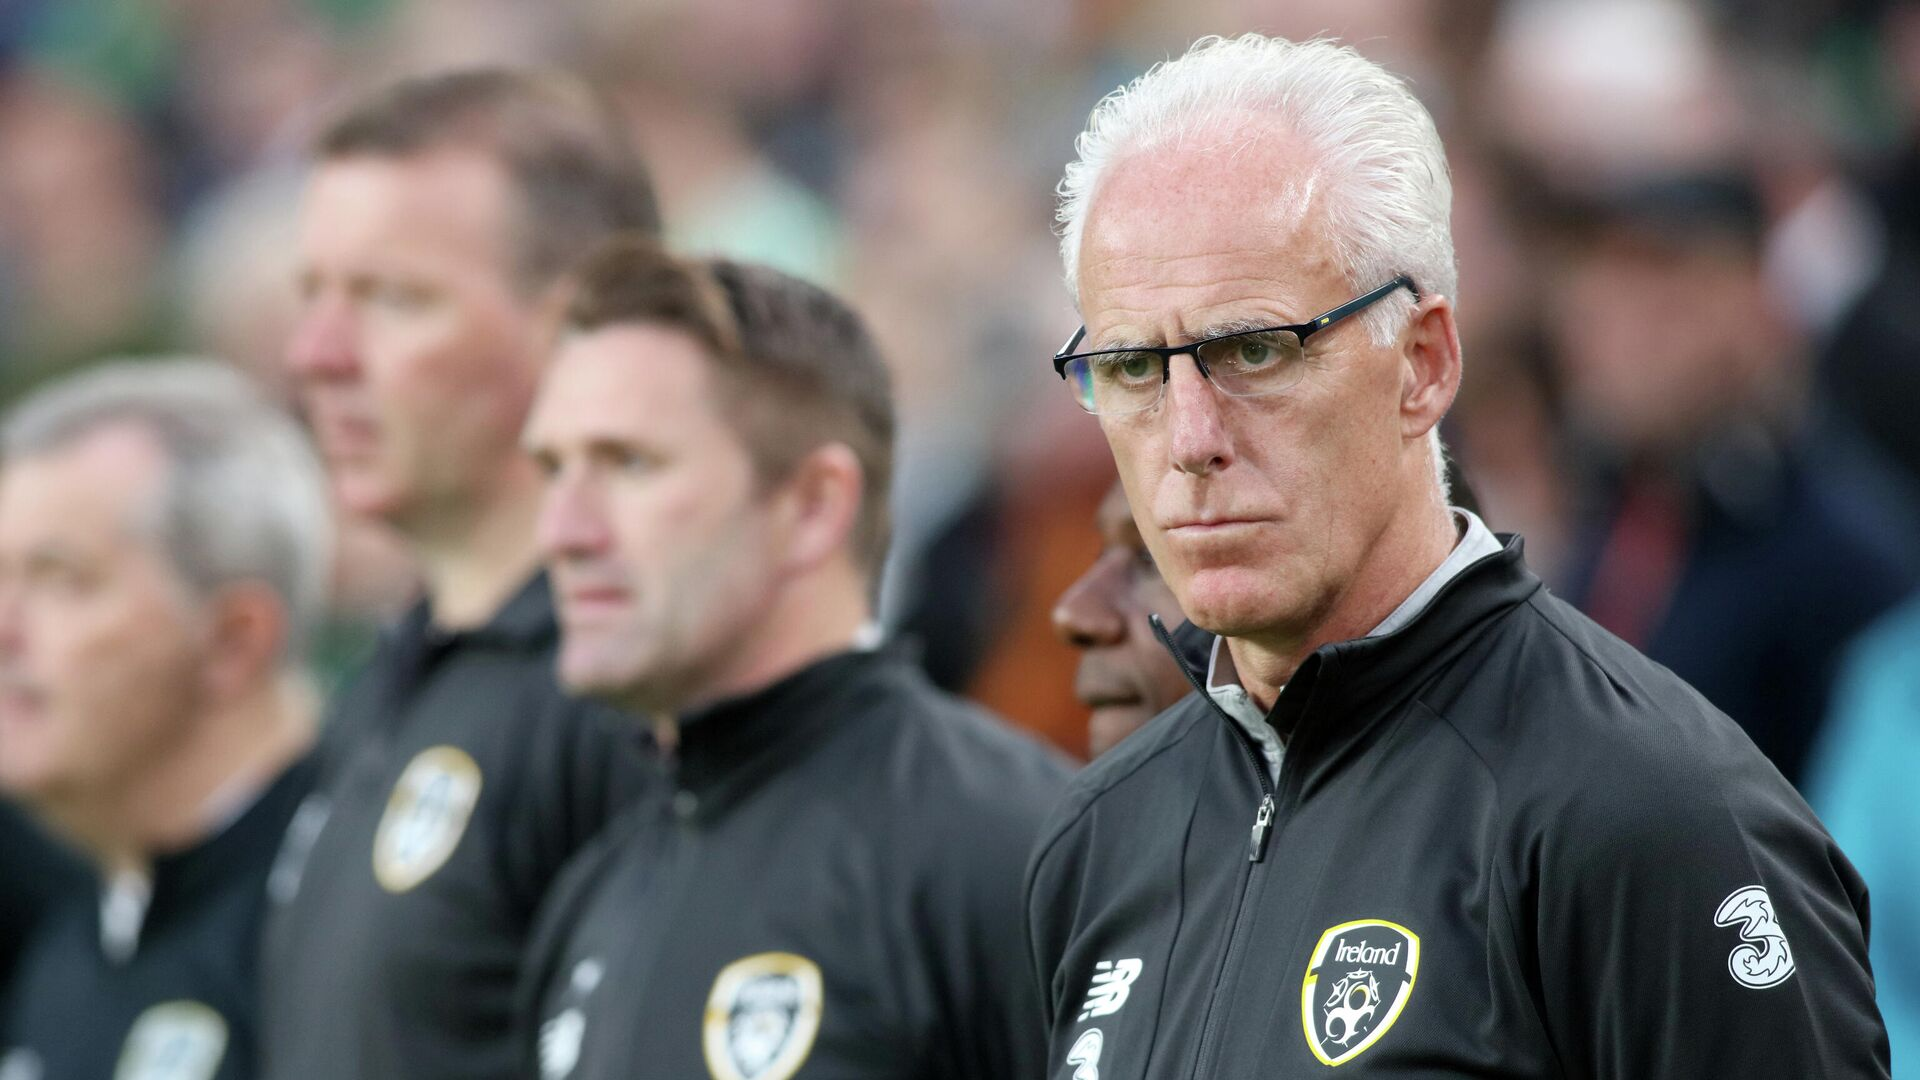 Republic of Ireland manager Mick McCarthy awaits kick off in the Euro 2020 football qualification match between Republic of Ireland and Switzerland at Aviva Stadium in Dublin, Ireland on September 5, 2019. - The game finished 1-1. (Photo by Paul Faith / AFP) - РИА Новости, 1920, 06.01.2021